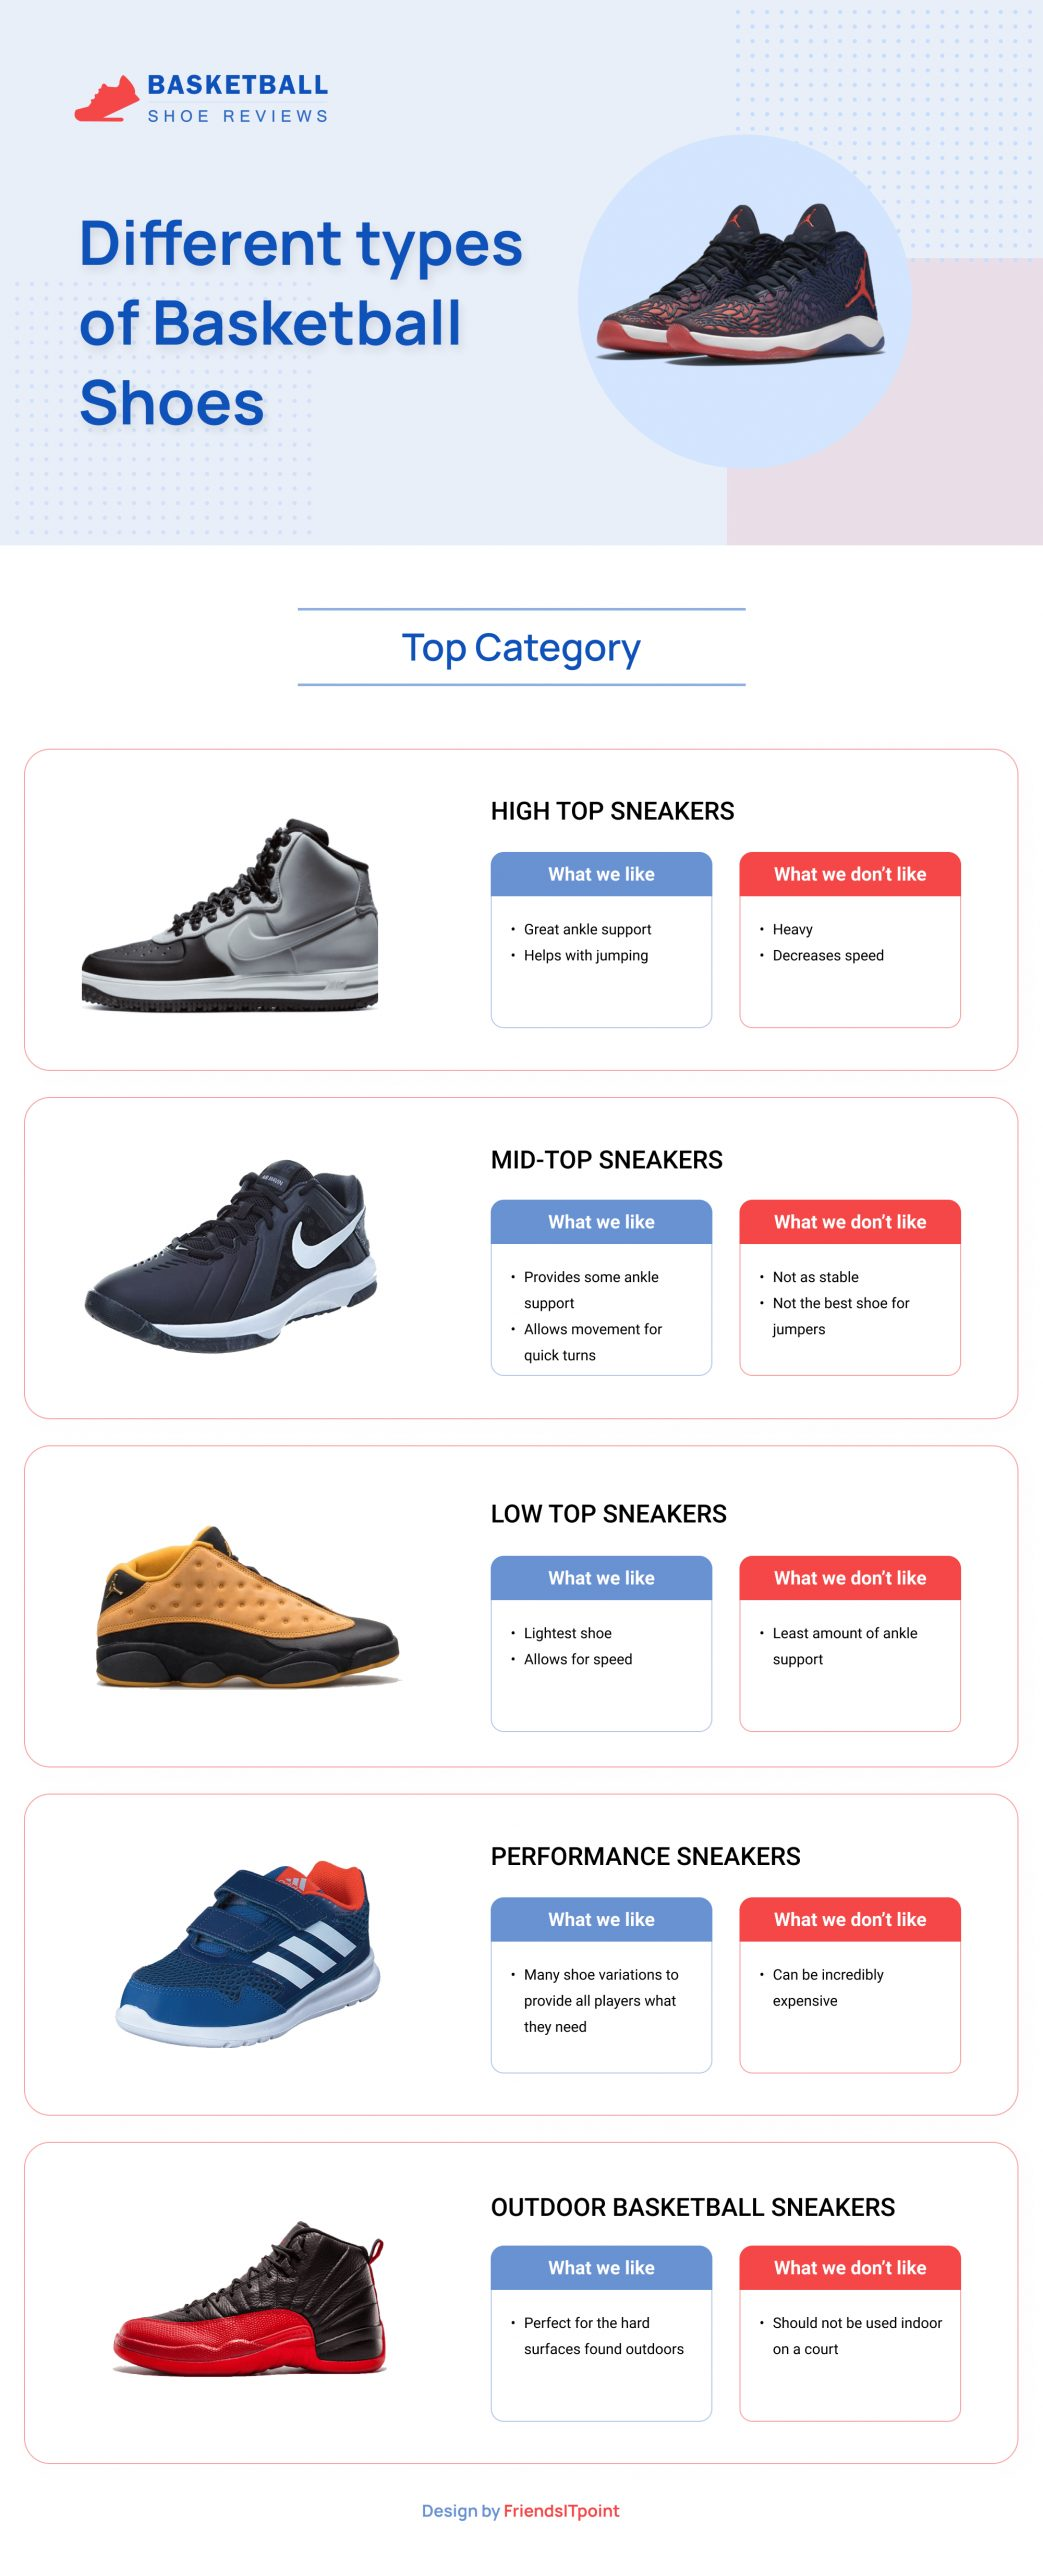 Different types of basketball shoes